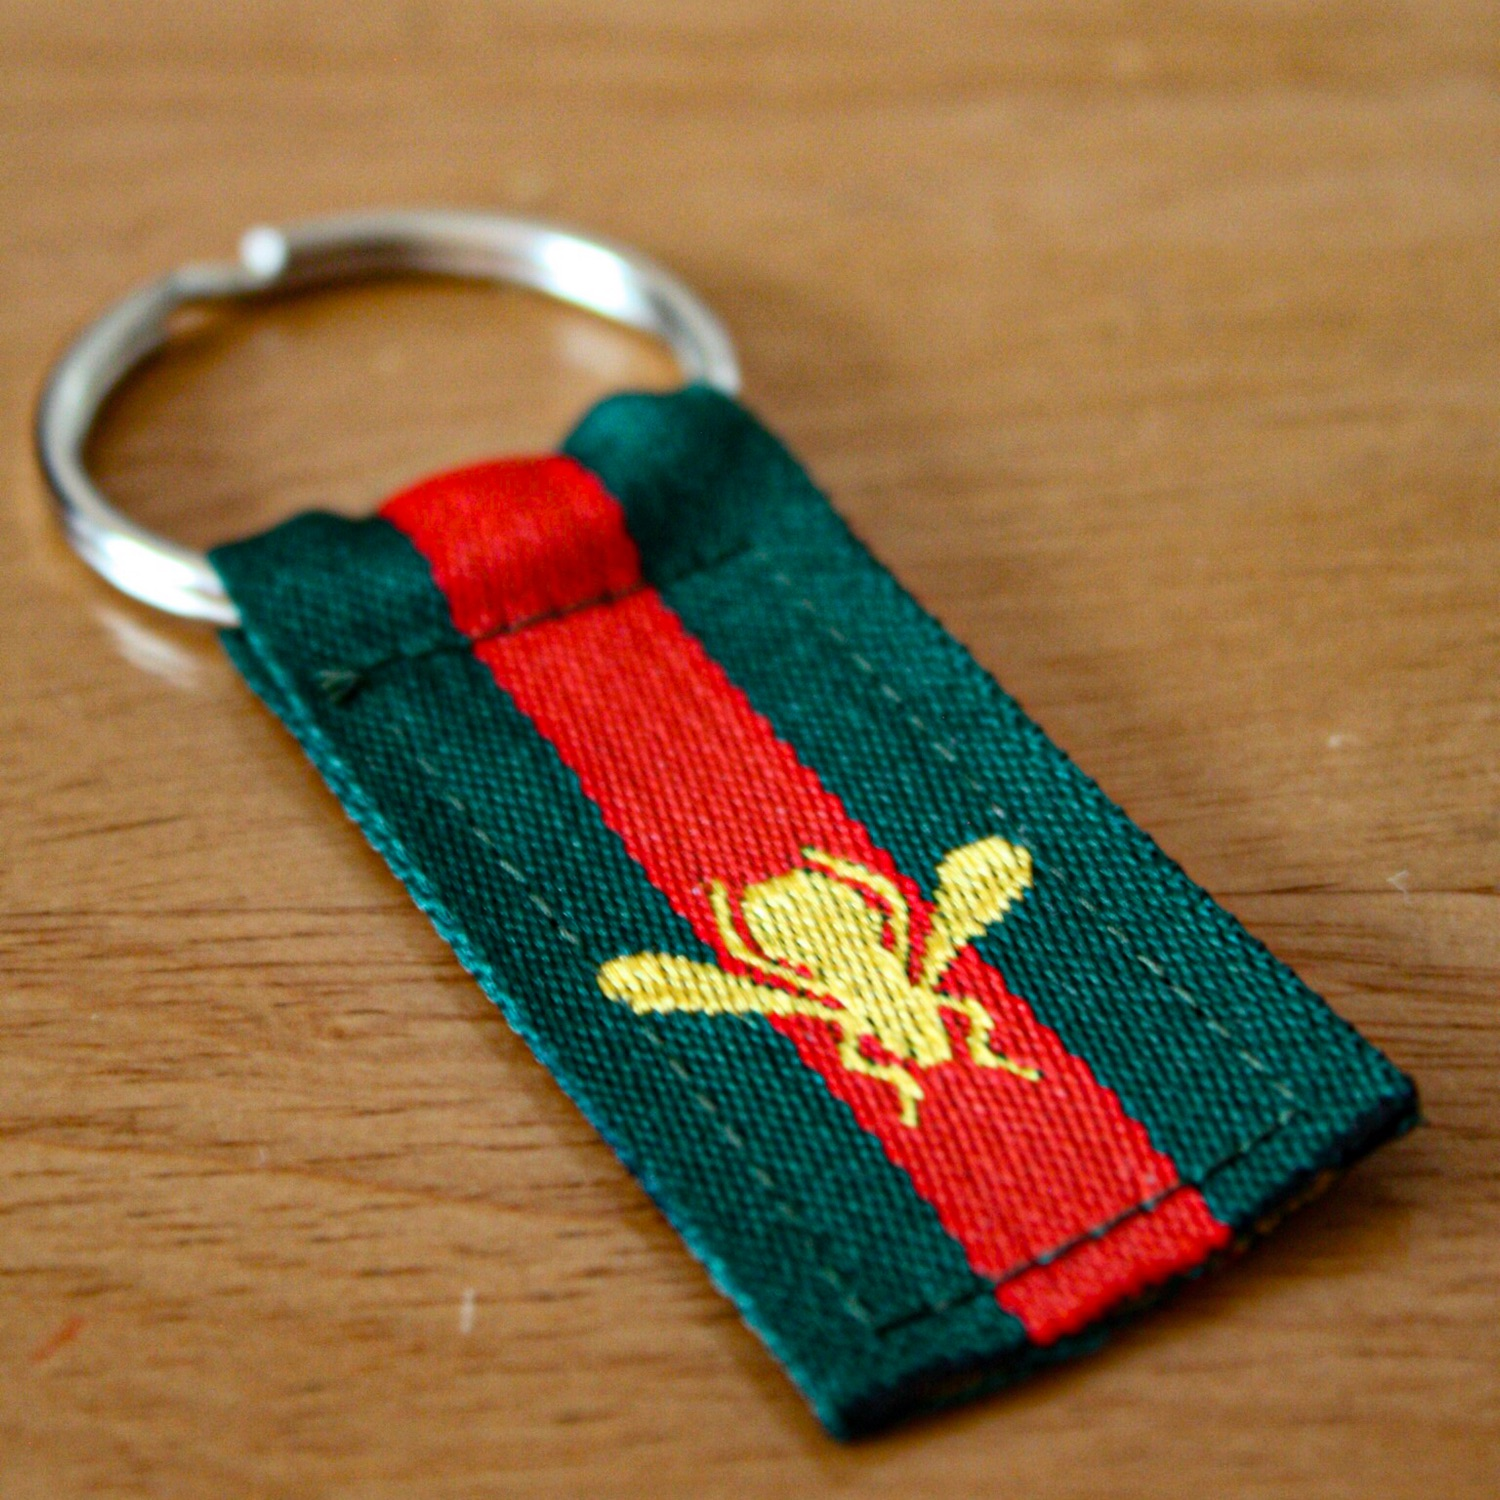 Custom Designer Keychains Gucci Louis Vuitton Etc